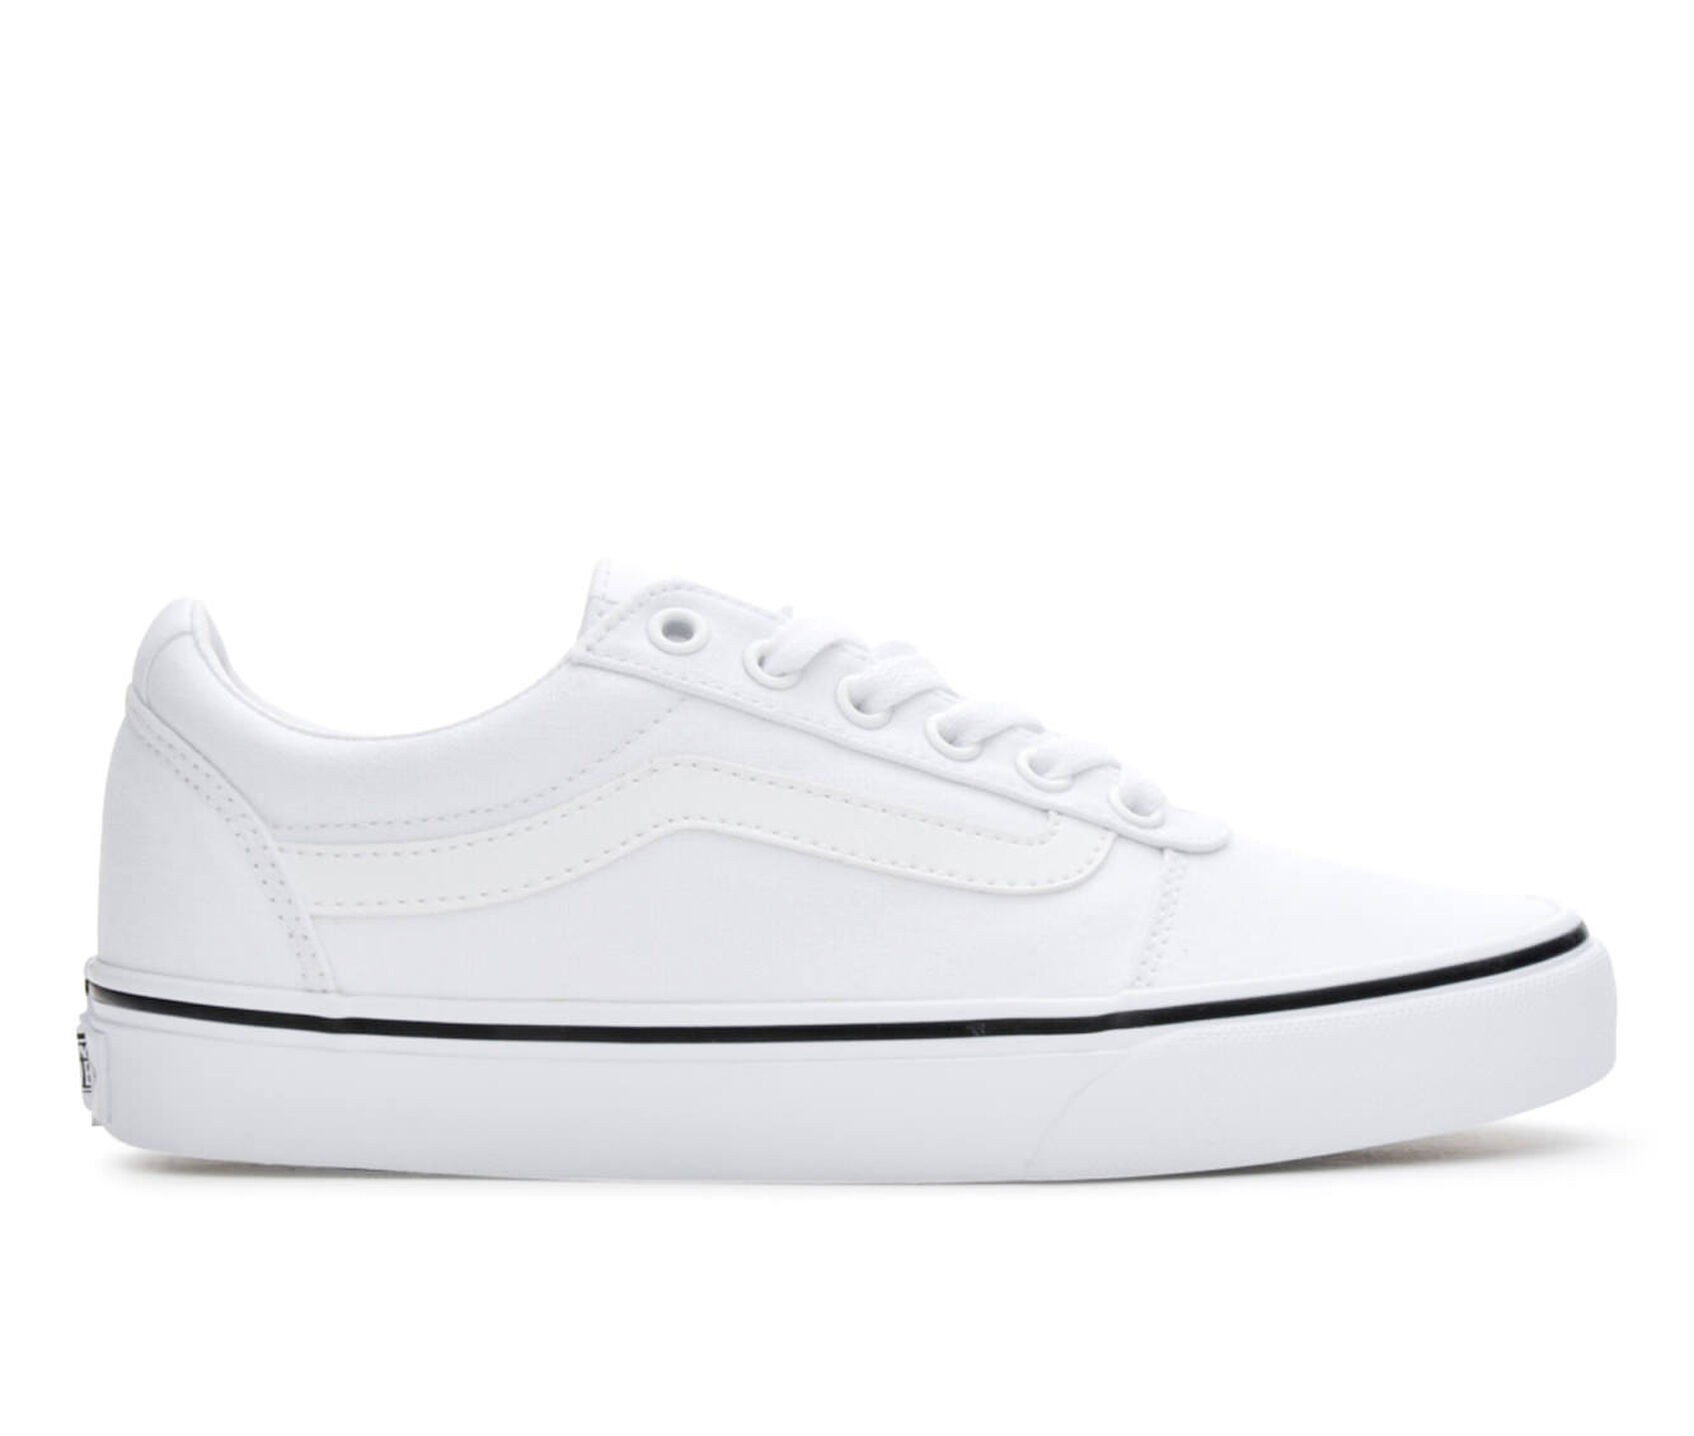 Womens Learher Shoes